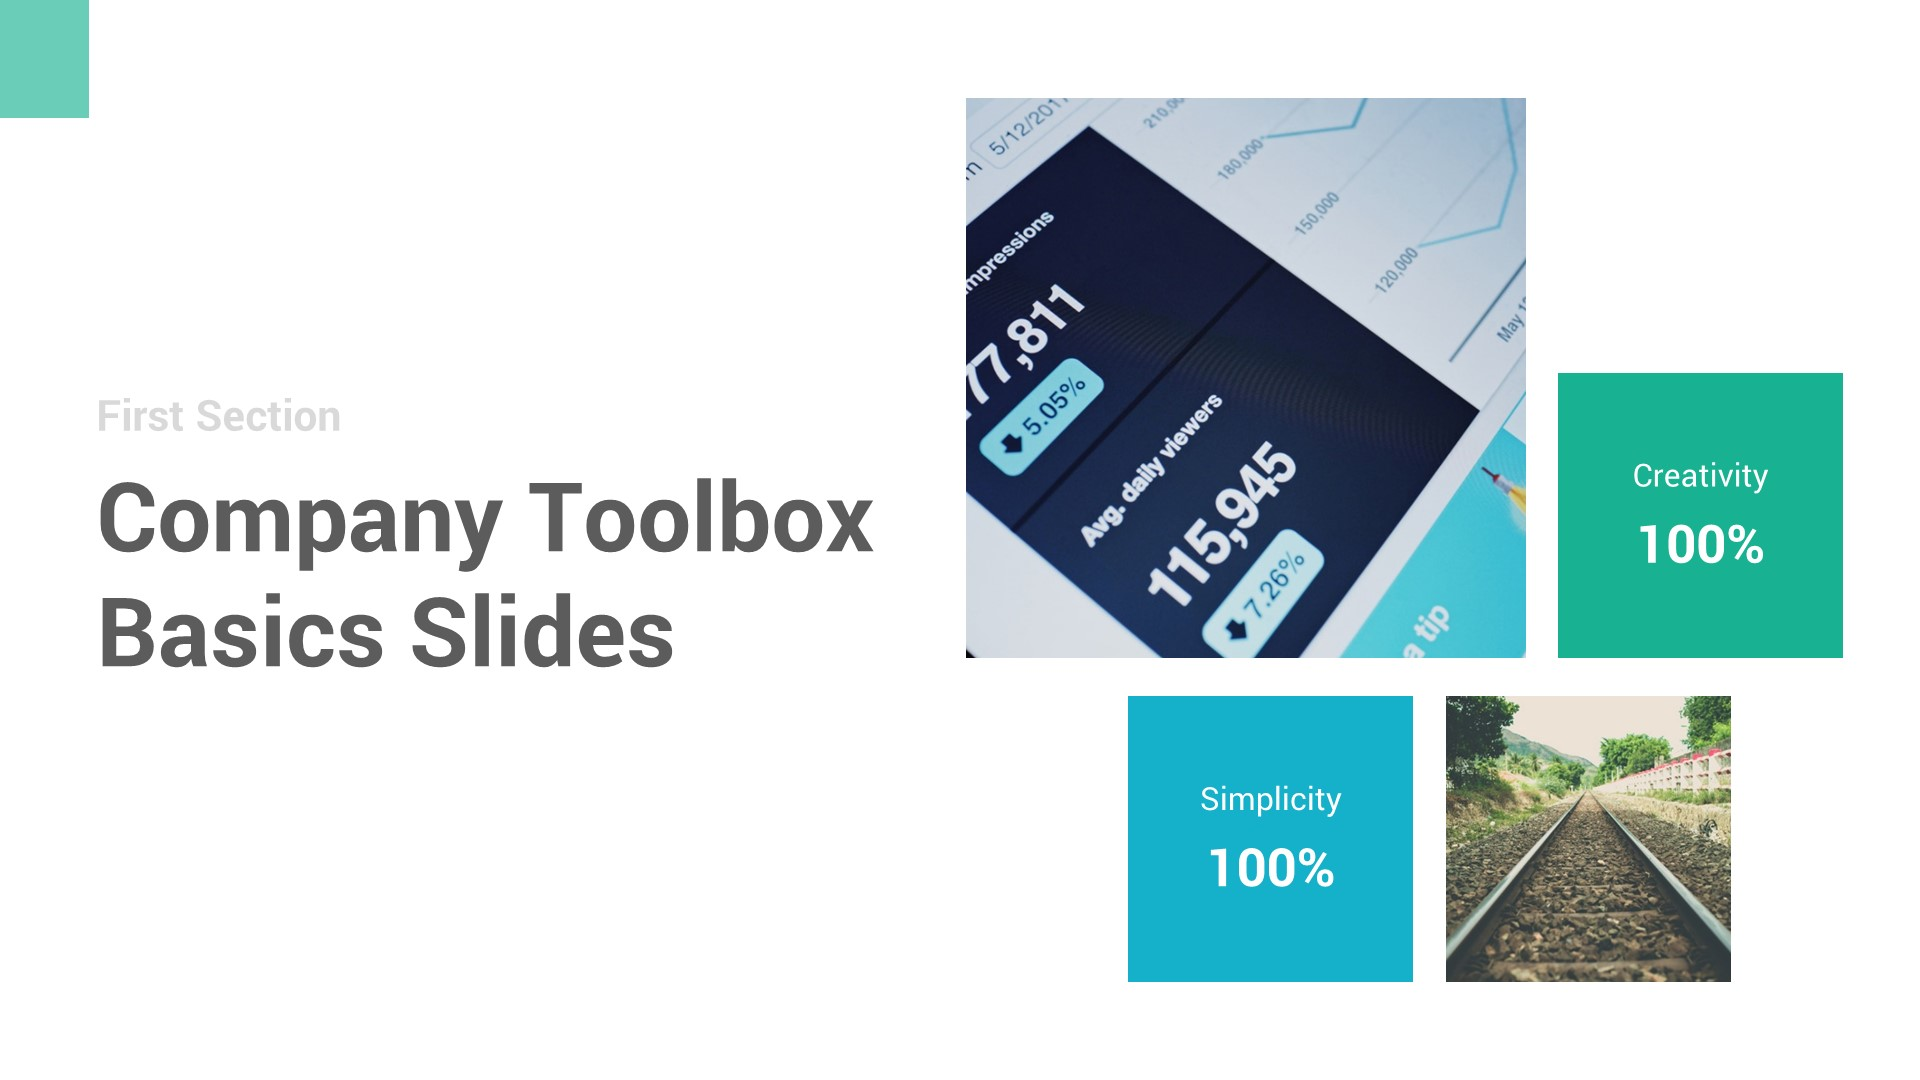 Company Toolbox PowerPoint Presentation Template